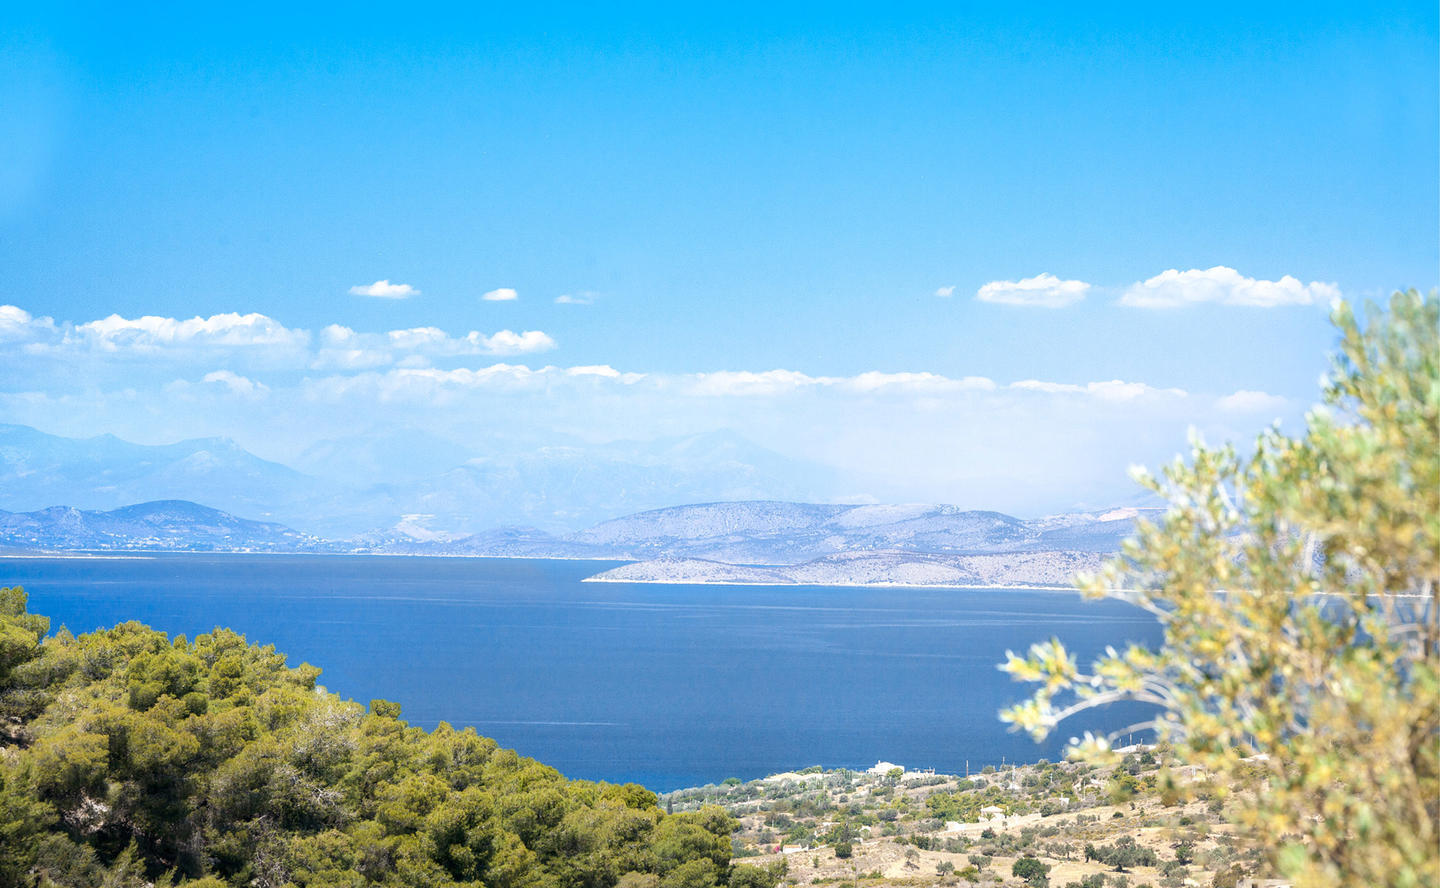 View over the Aegean, Six-Bedroom Villa - Amanzoe, Greece